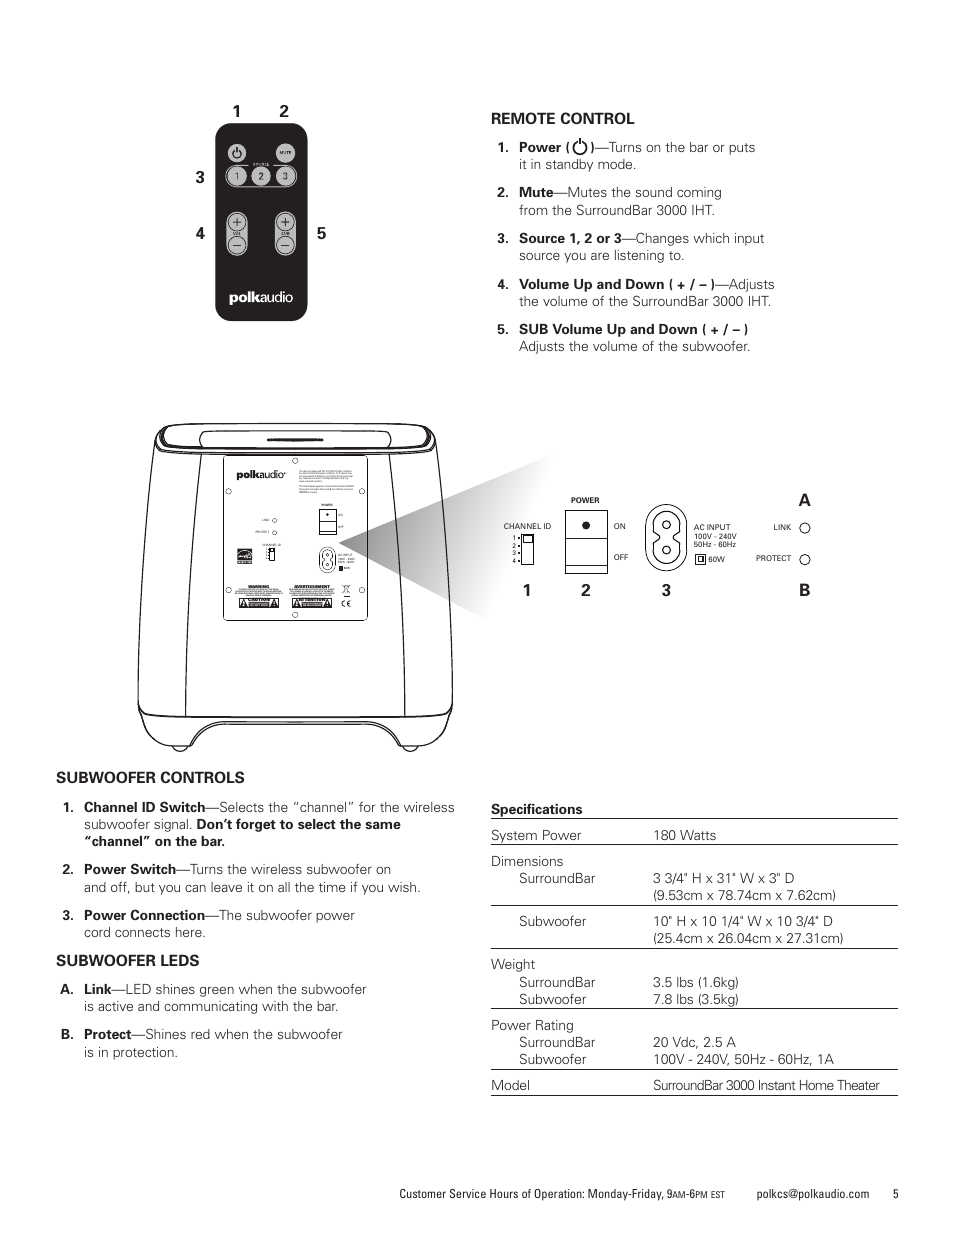 Bose Soundbar Manual Manual Guide